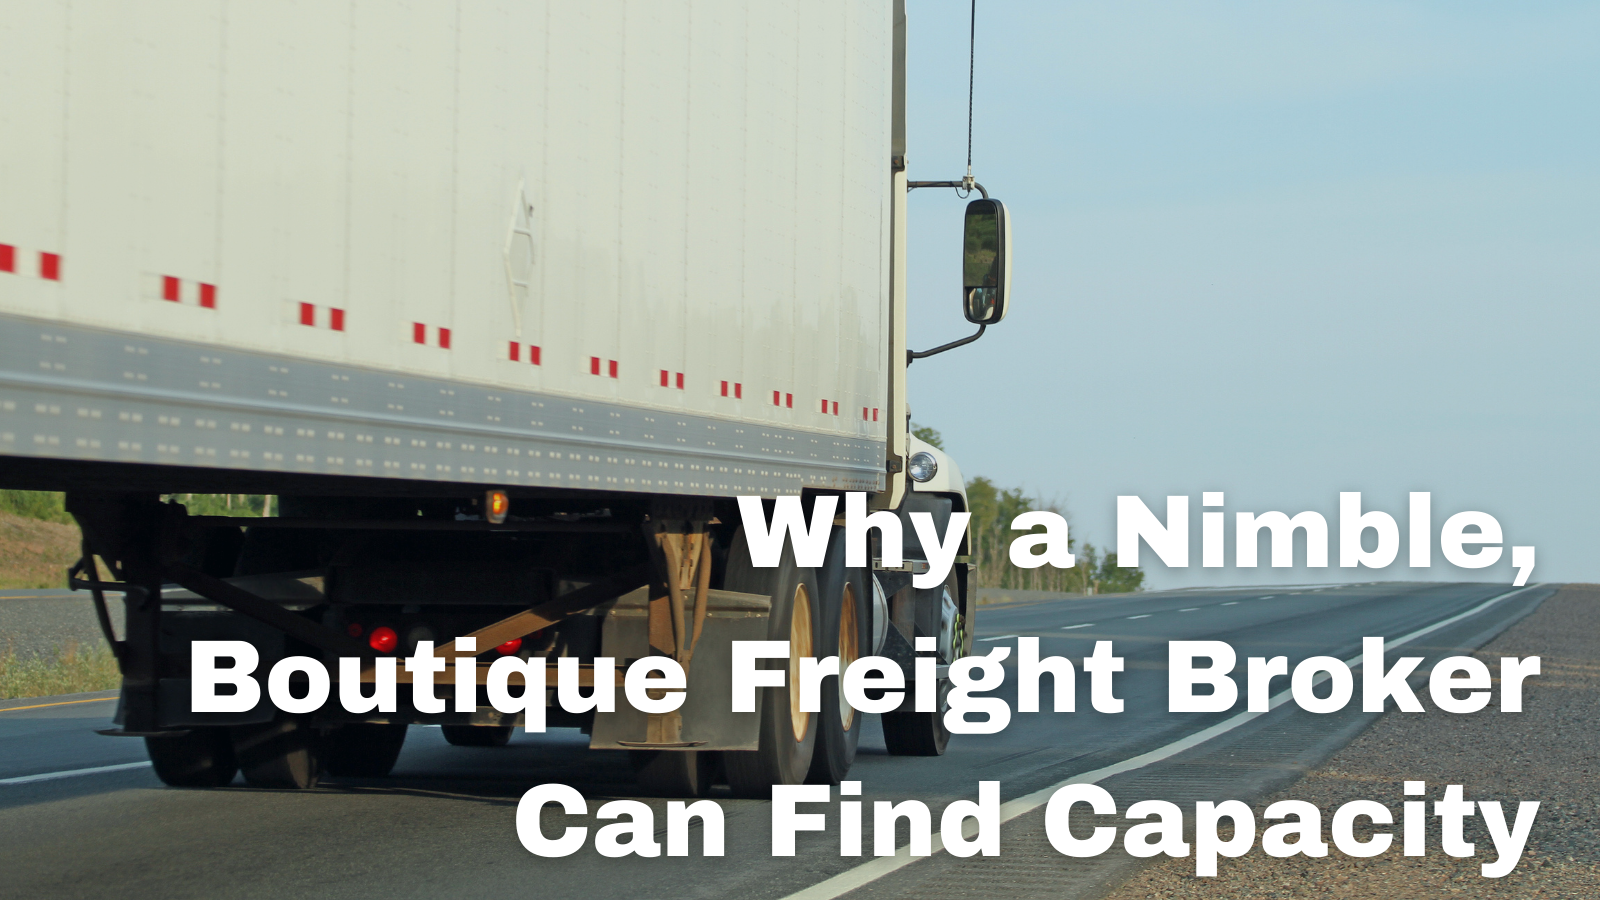 Why a Nimble, Boutique Freight Broker Can Find Capacity